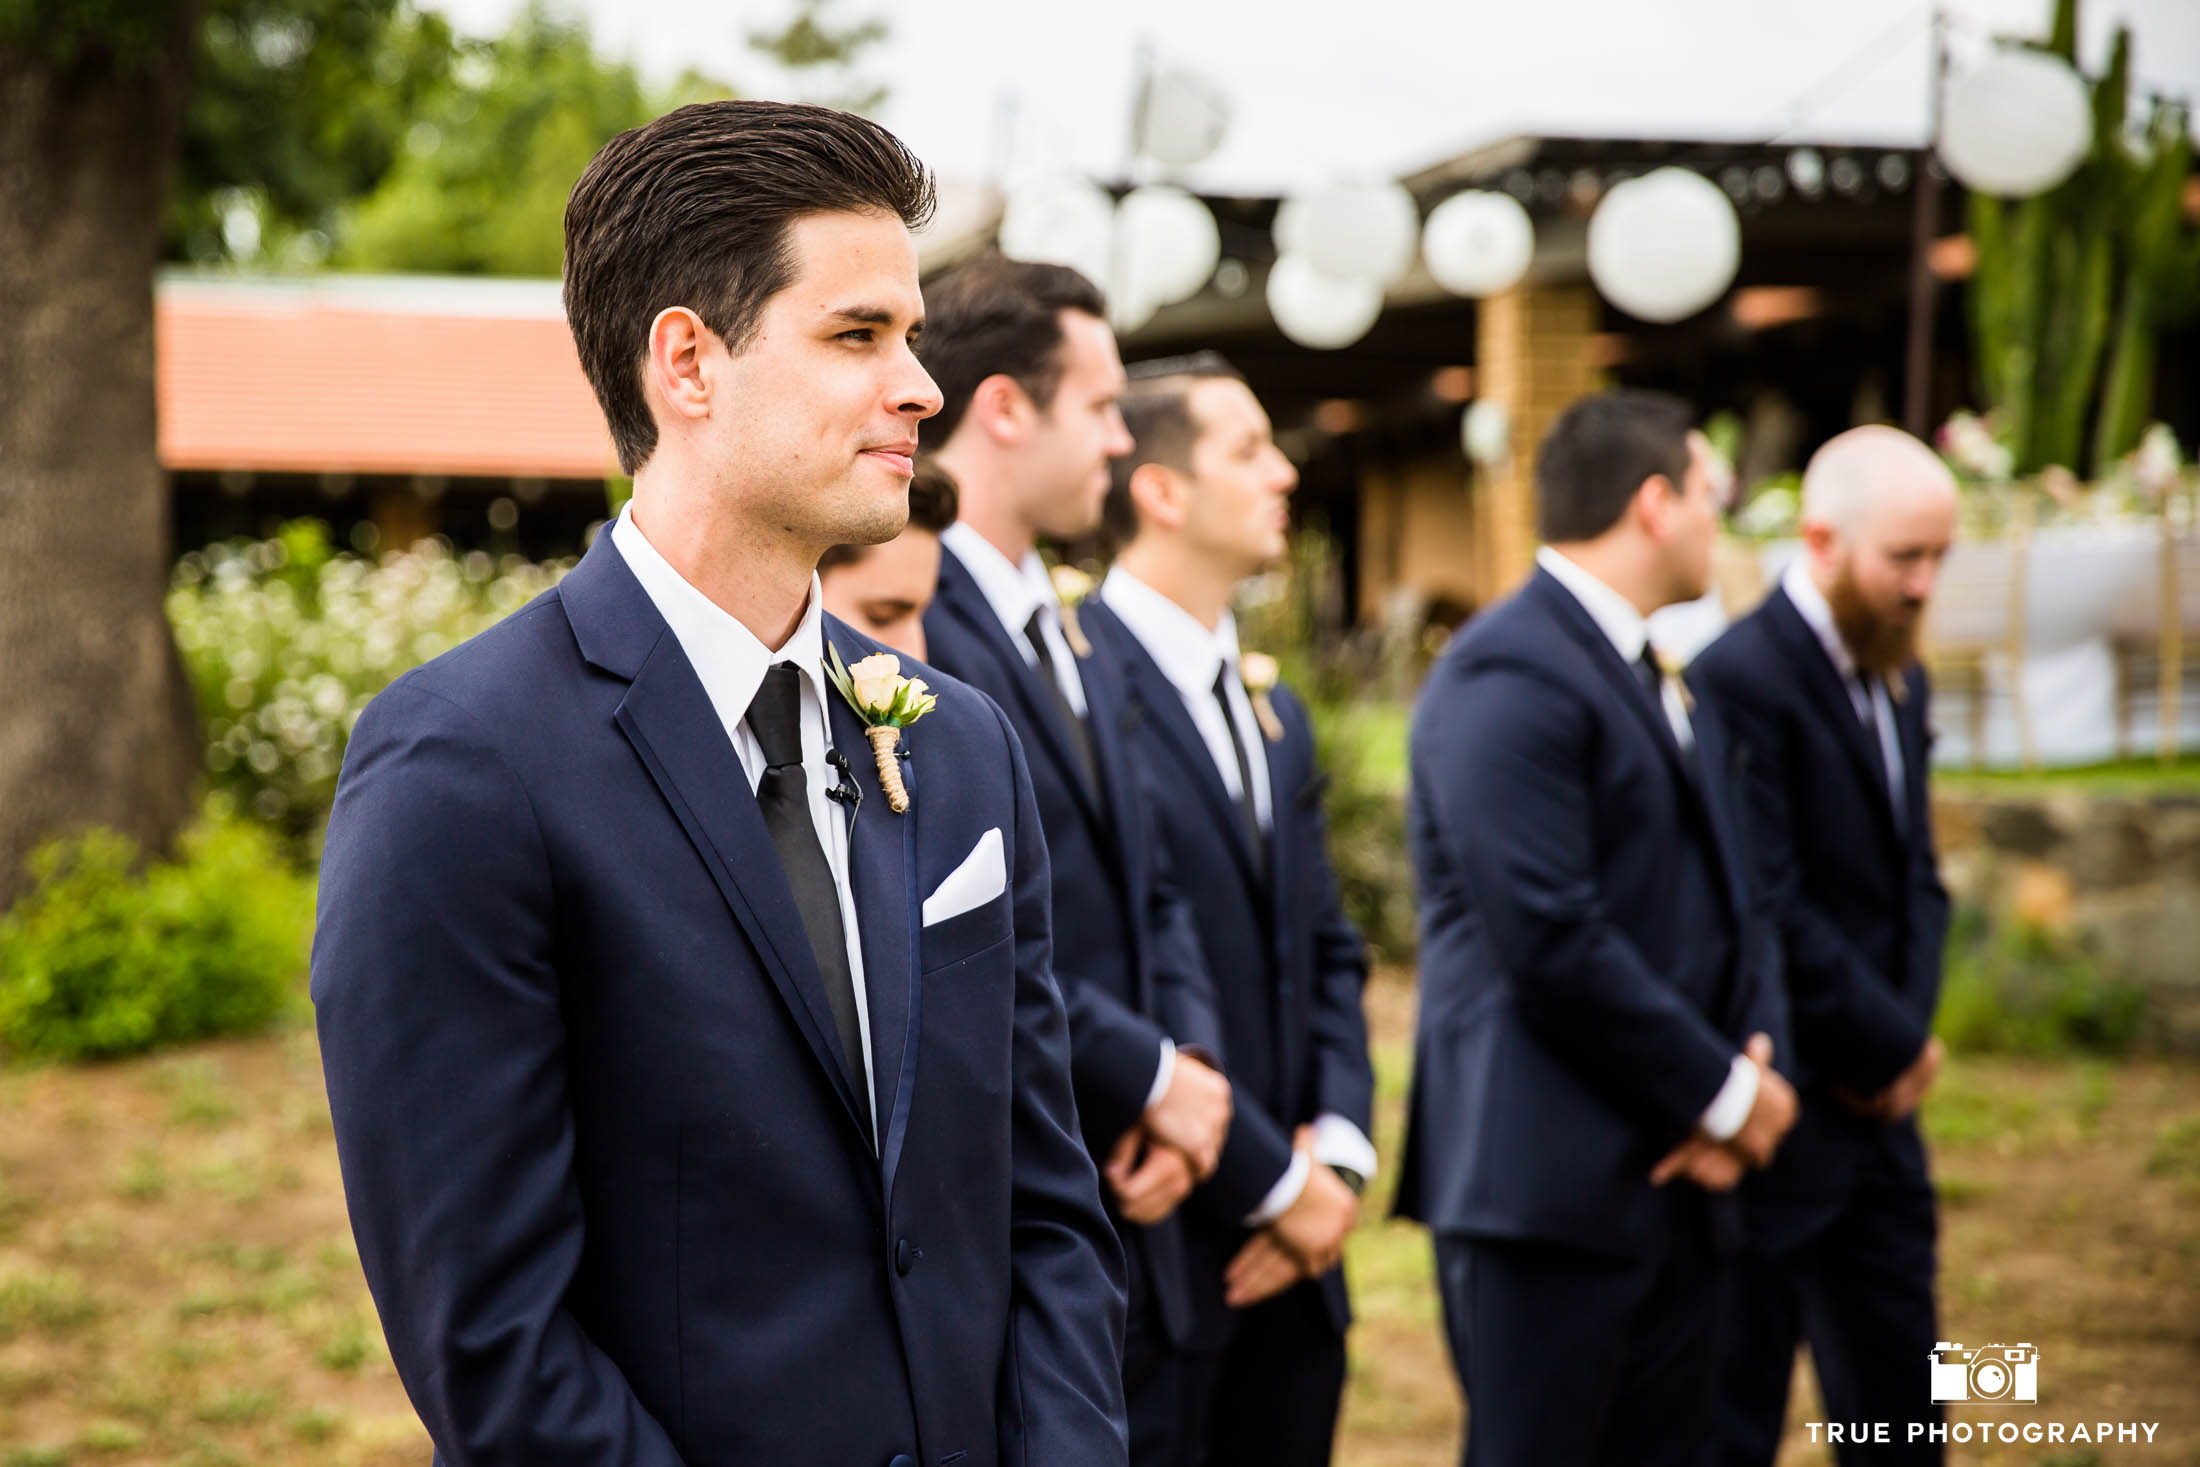 Groom looks on and smiles after seeing Bride come down aisle during wedding